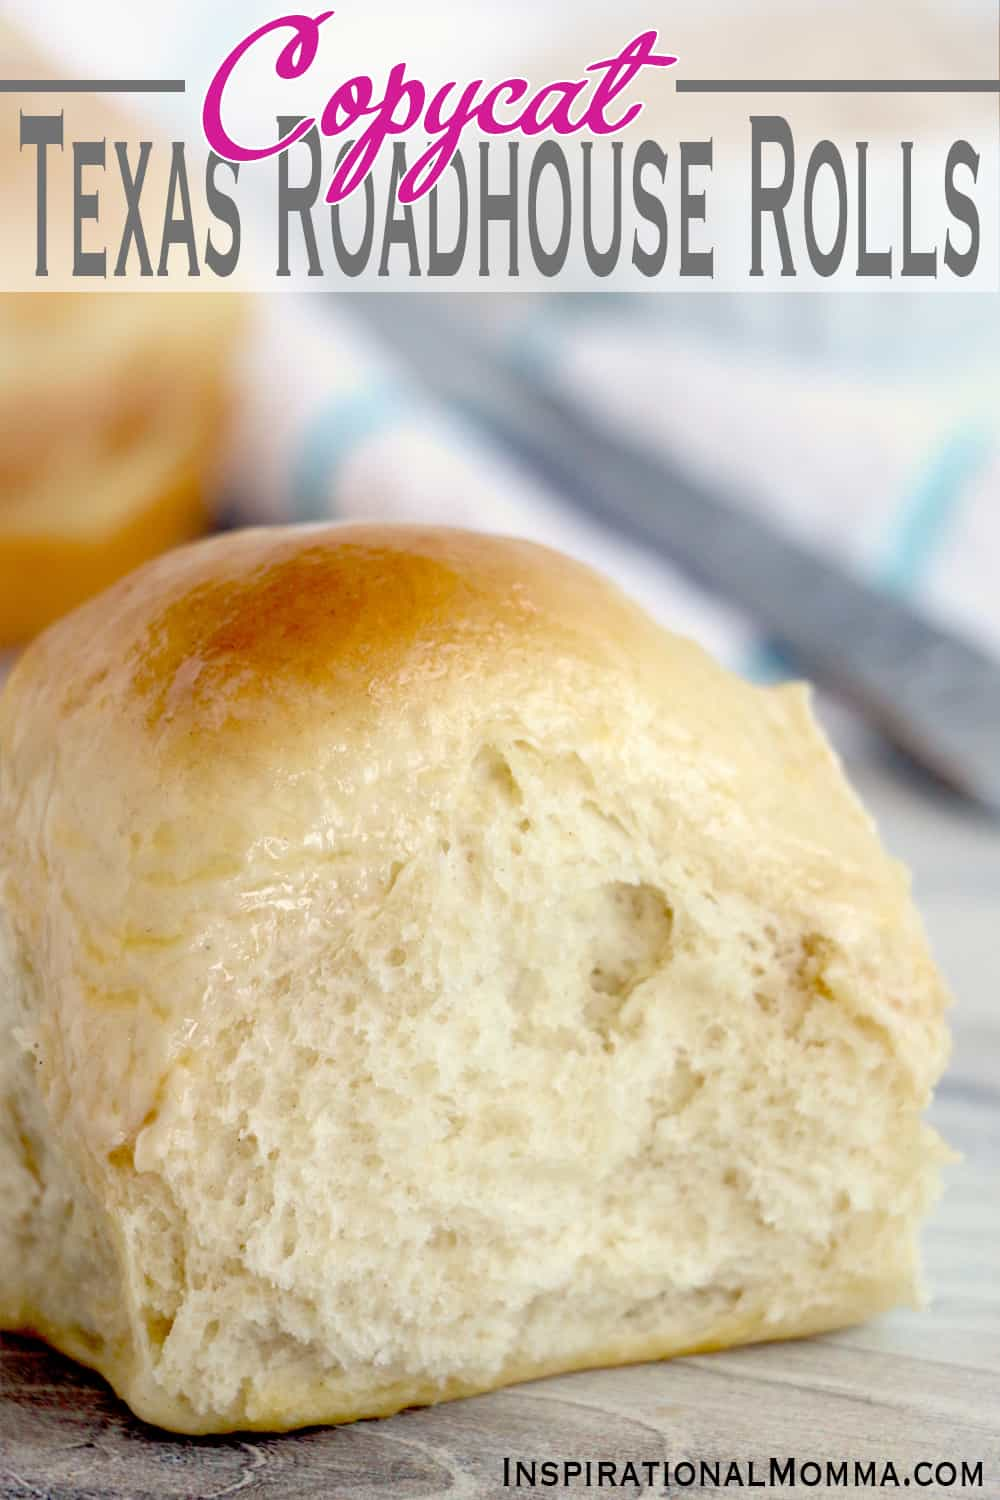 Everyone can make Copycat Texas Roadhouse Rolls! They are easy, soft, and oh so fluffy. A perfect homemade addition to any meal! #InspirationalMomma #CopycatTexasRoadhouseRolls #homemadedinnerrolls #dinnerrolls #homemade #TexasRoadhouseRolls #homemadebuns